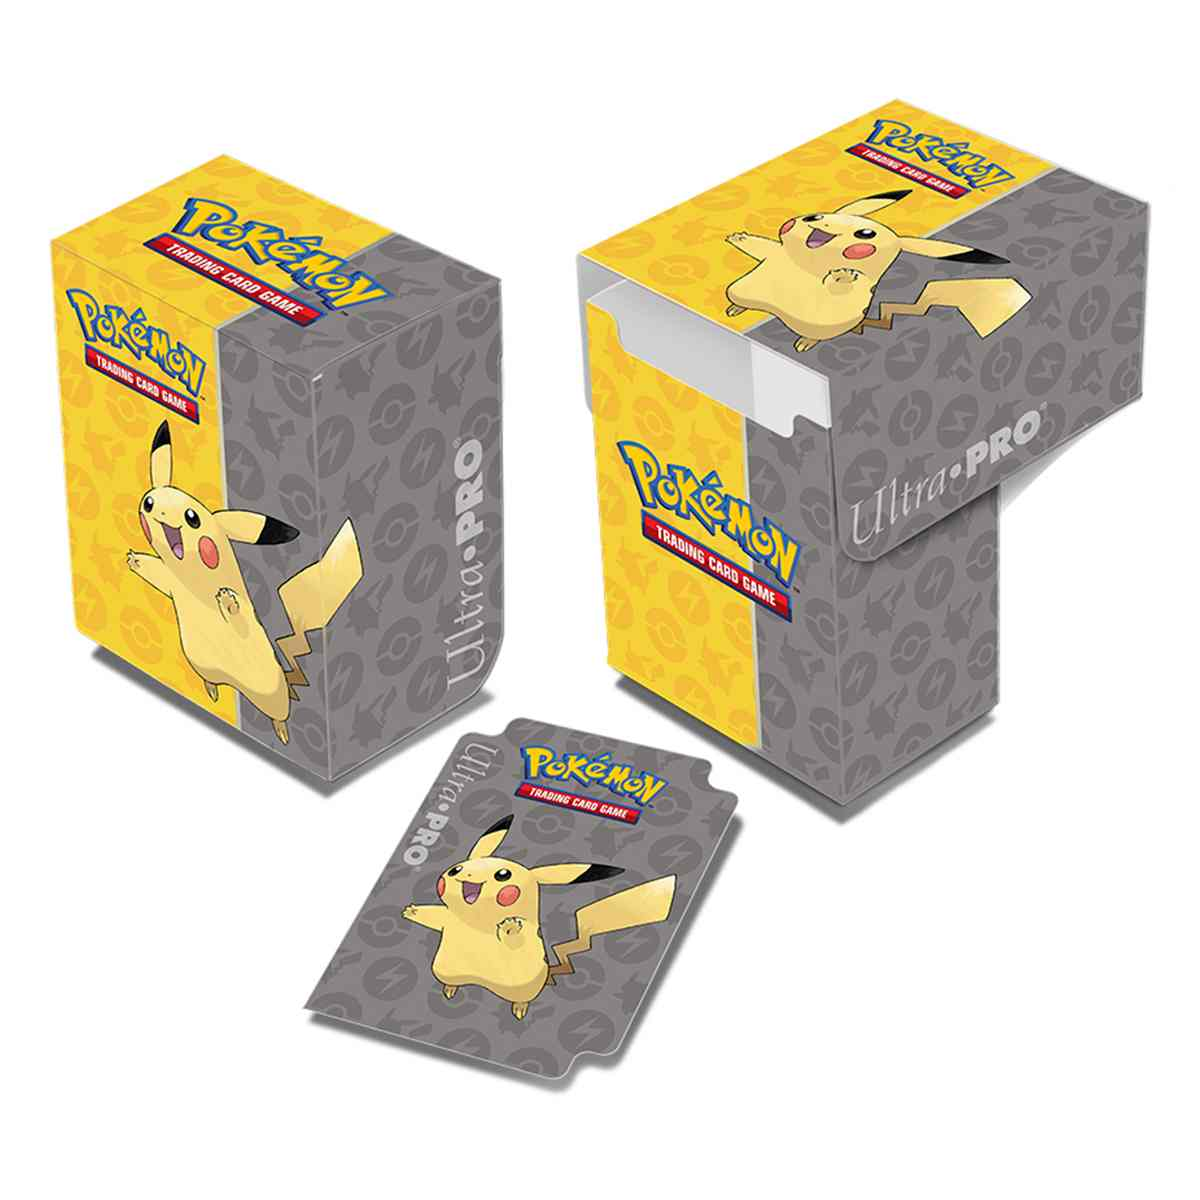 Deck Box Pokemon Pikachu Ultra Pro